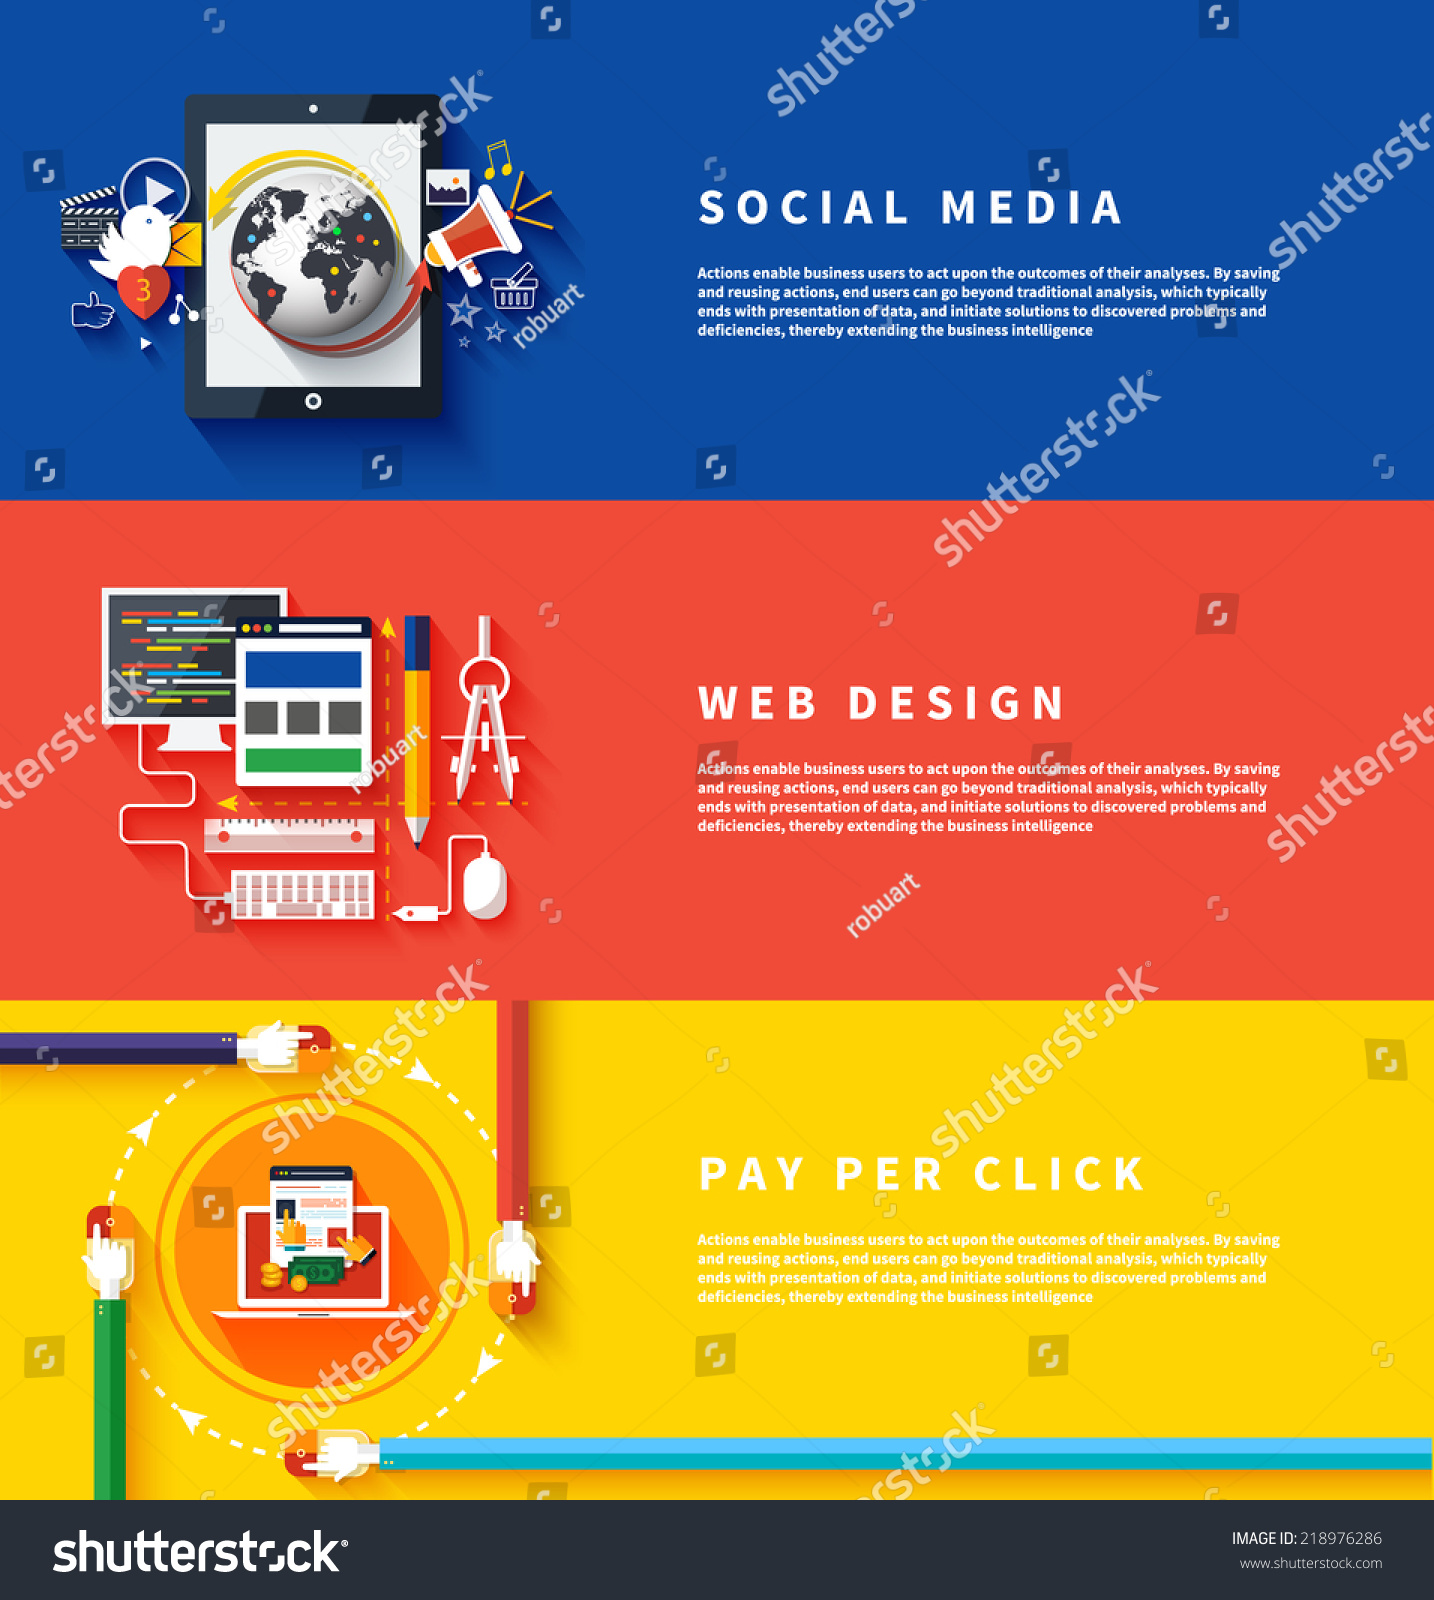 Icons Web Design Seo Social Media Stock Vector Royalty Free 218976286